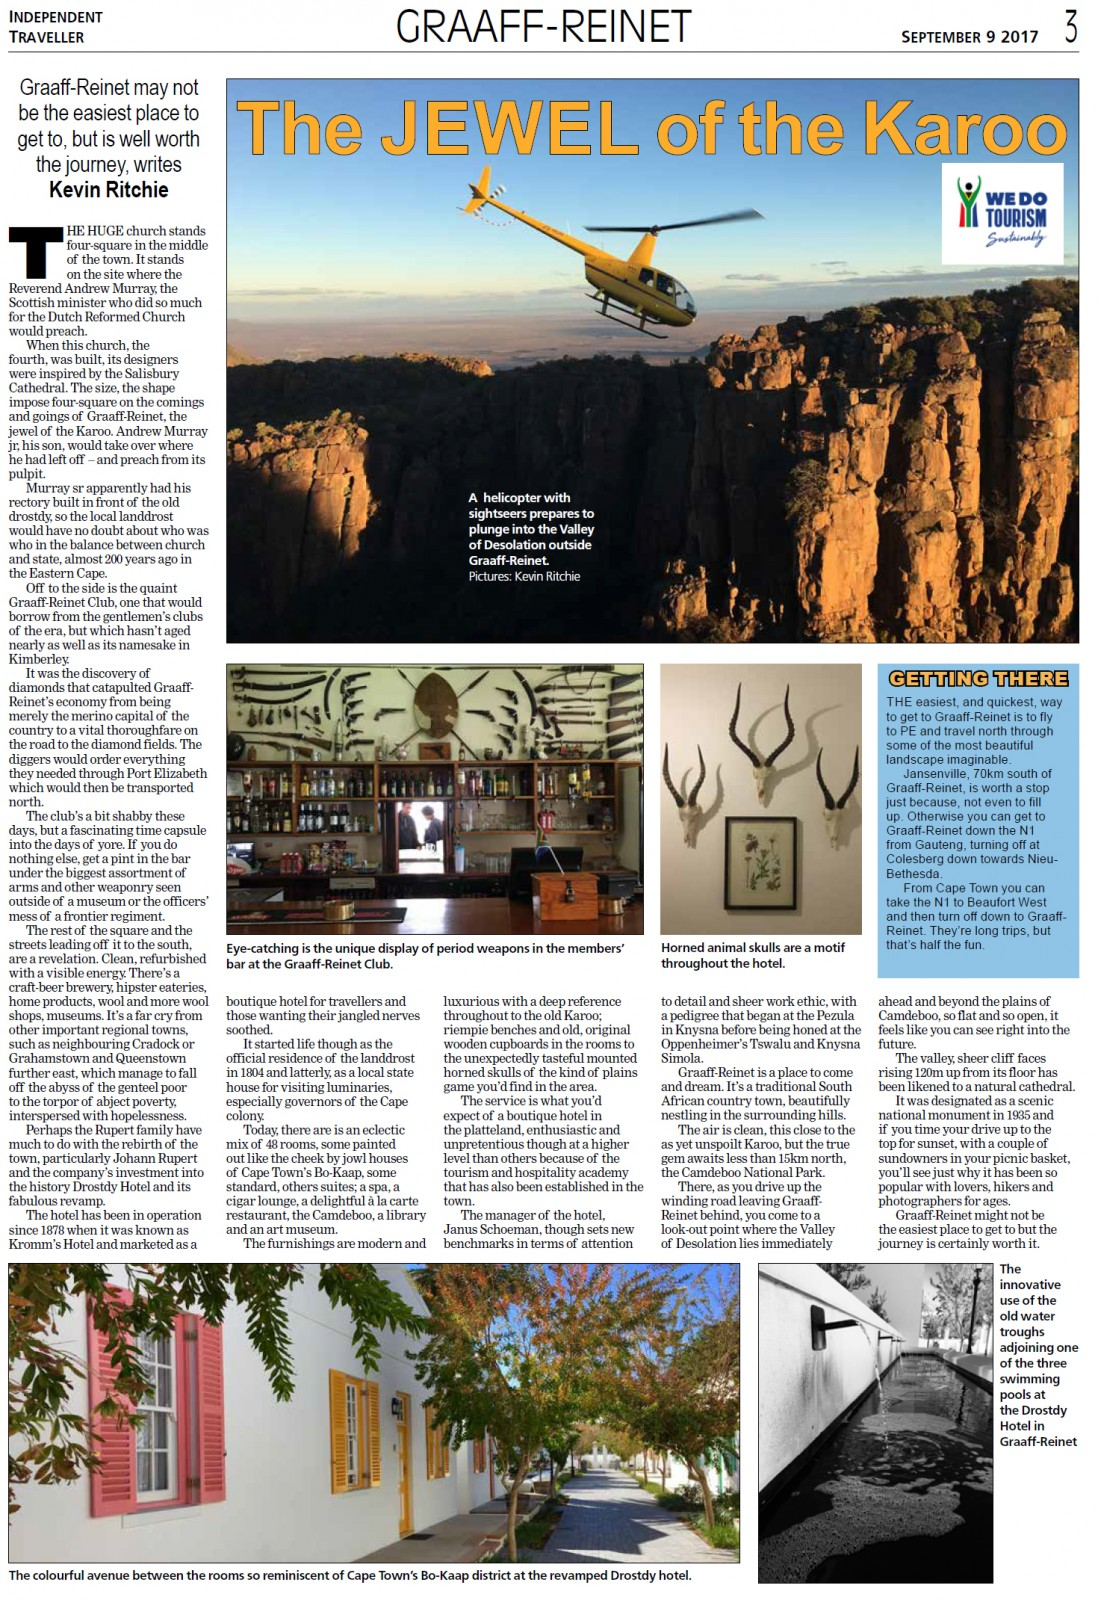 graaff_reinet_the_jewel_of_the_karoo.jpg